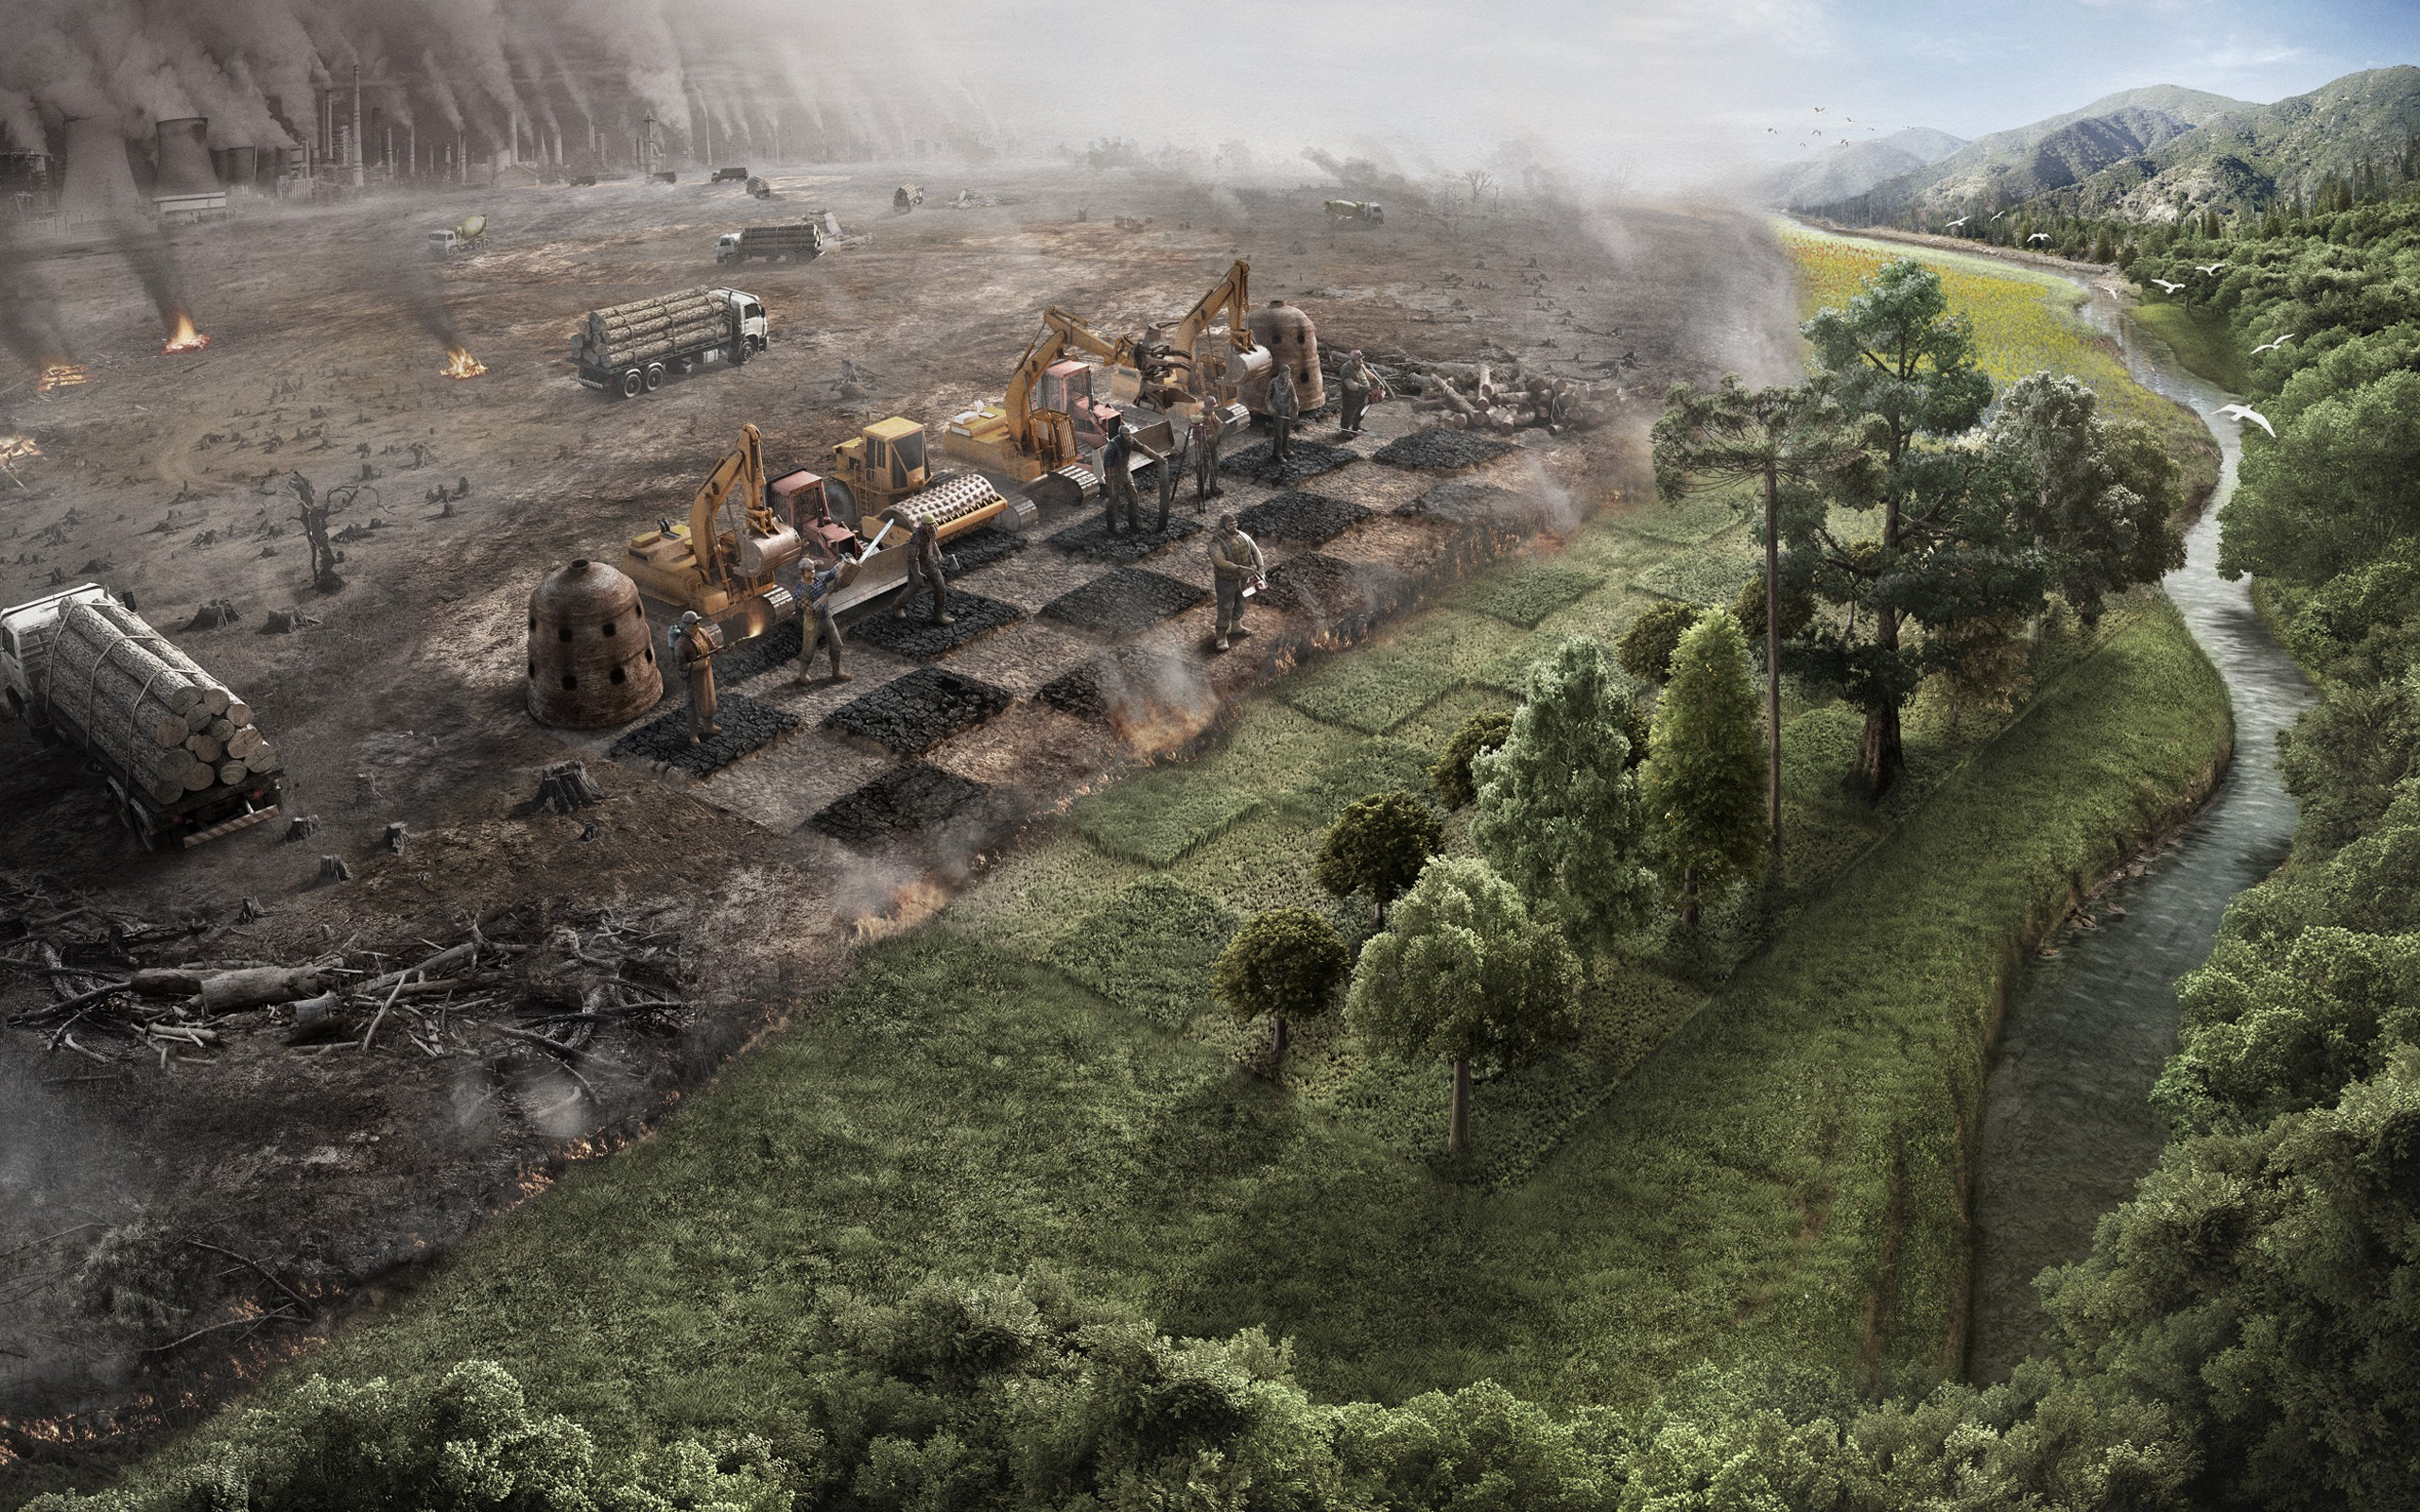 Landscapes nature trees chess earth surrealism human surreal artwork industrial plants rivers environment